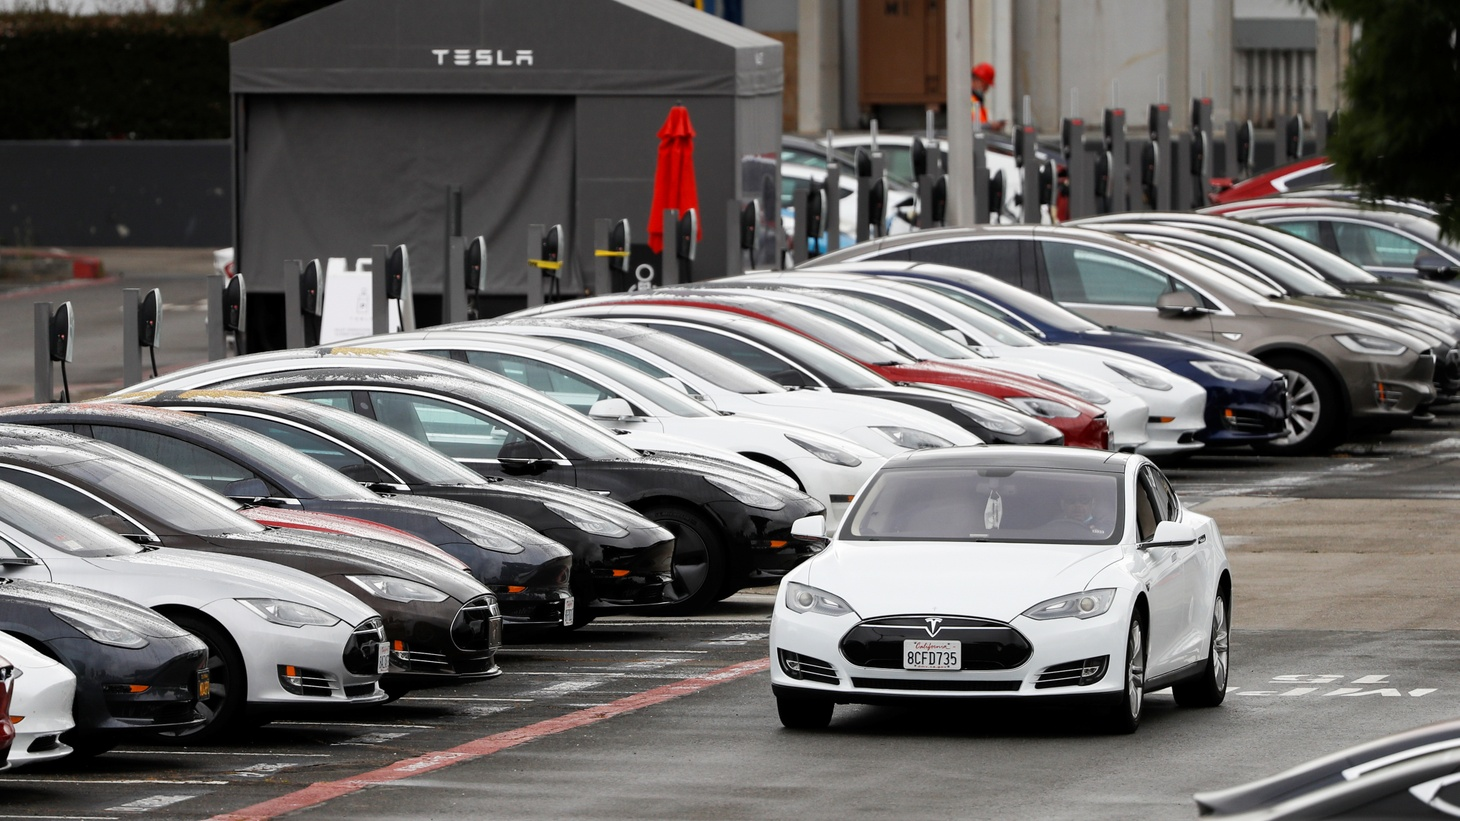 A Tesla Model S electric vehicle drives along a row of occupied superchargers at Tesla's primary vehicle factory after CEO Elon Musk announced he was defying local officials' restrictions against the coronavirus disease (COVID-19) by reopening the plant in Fremont, California, U.S. May 12.